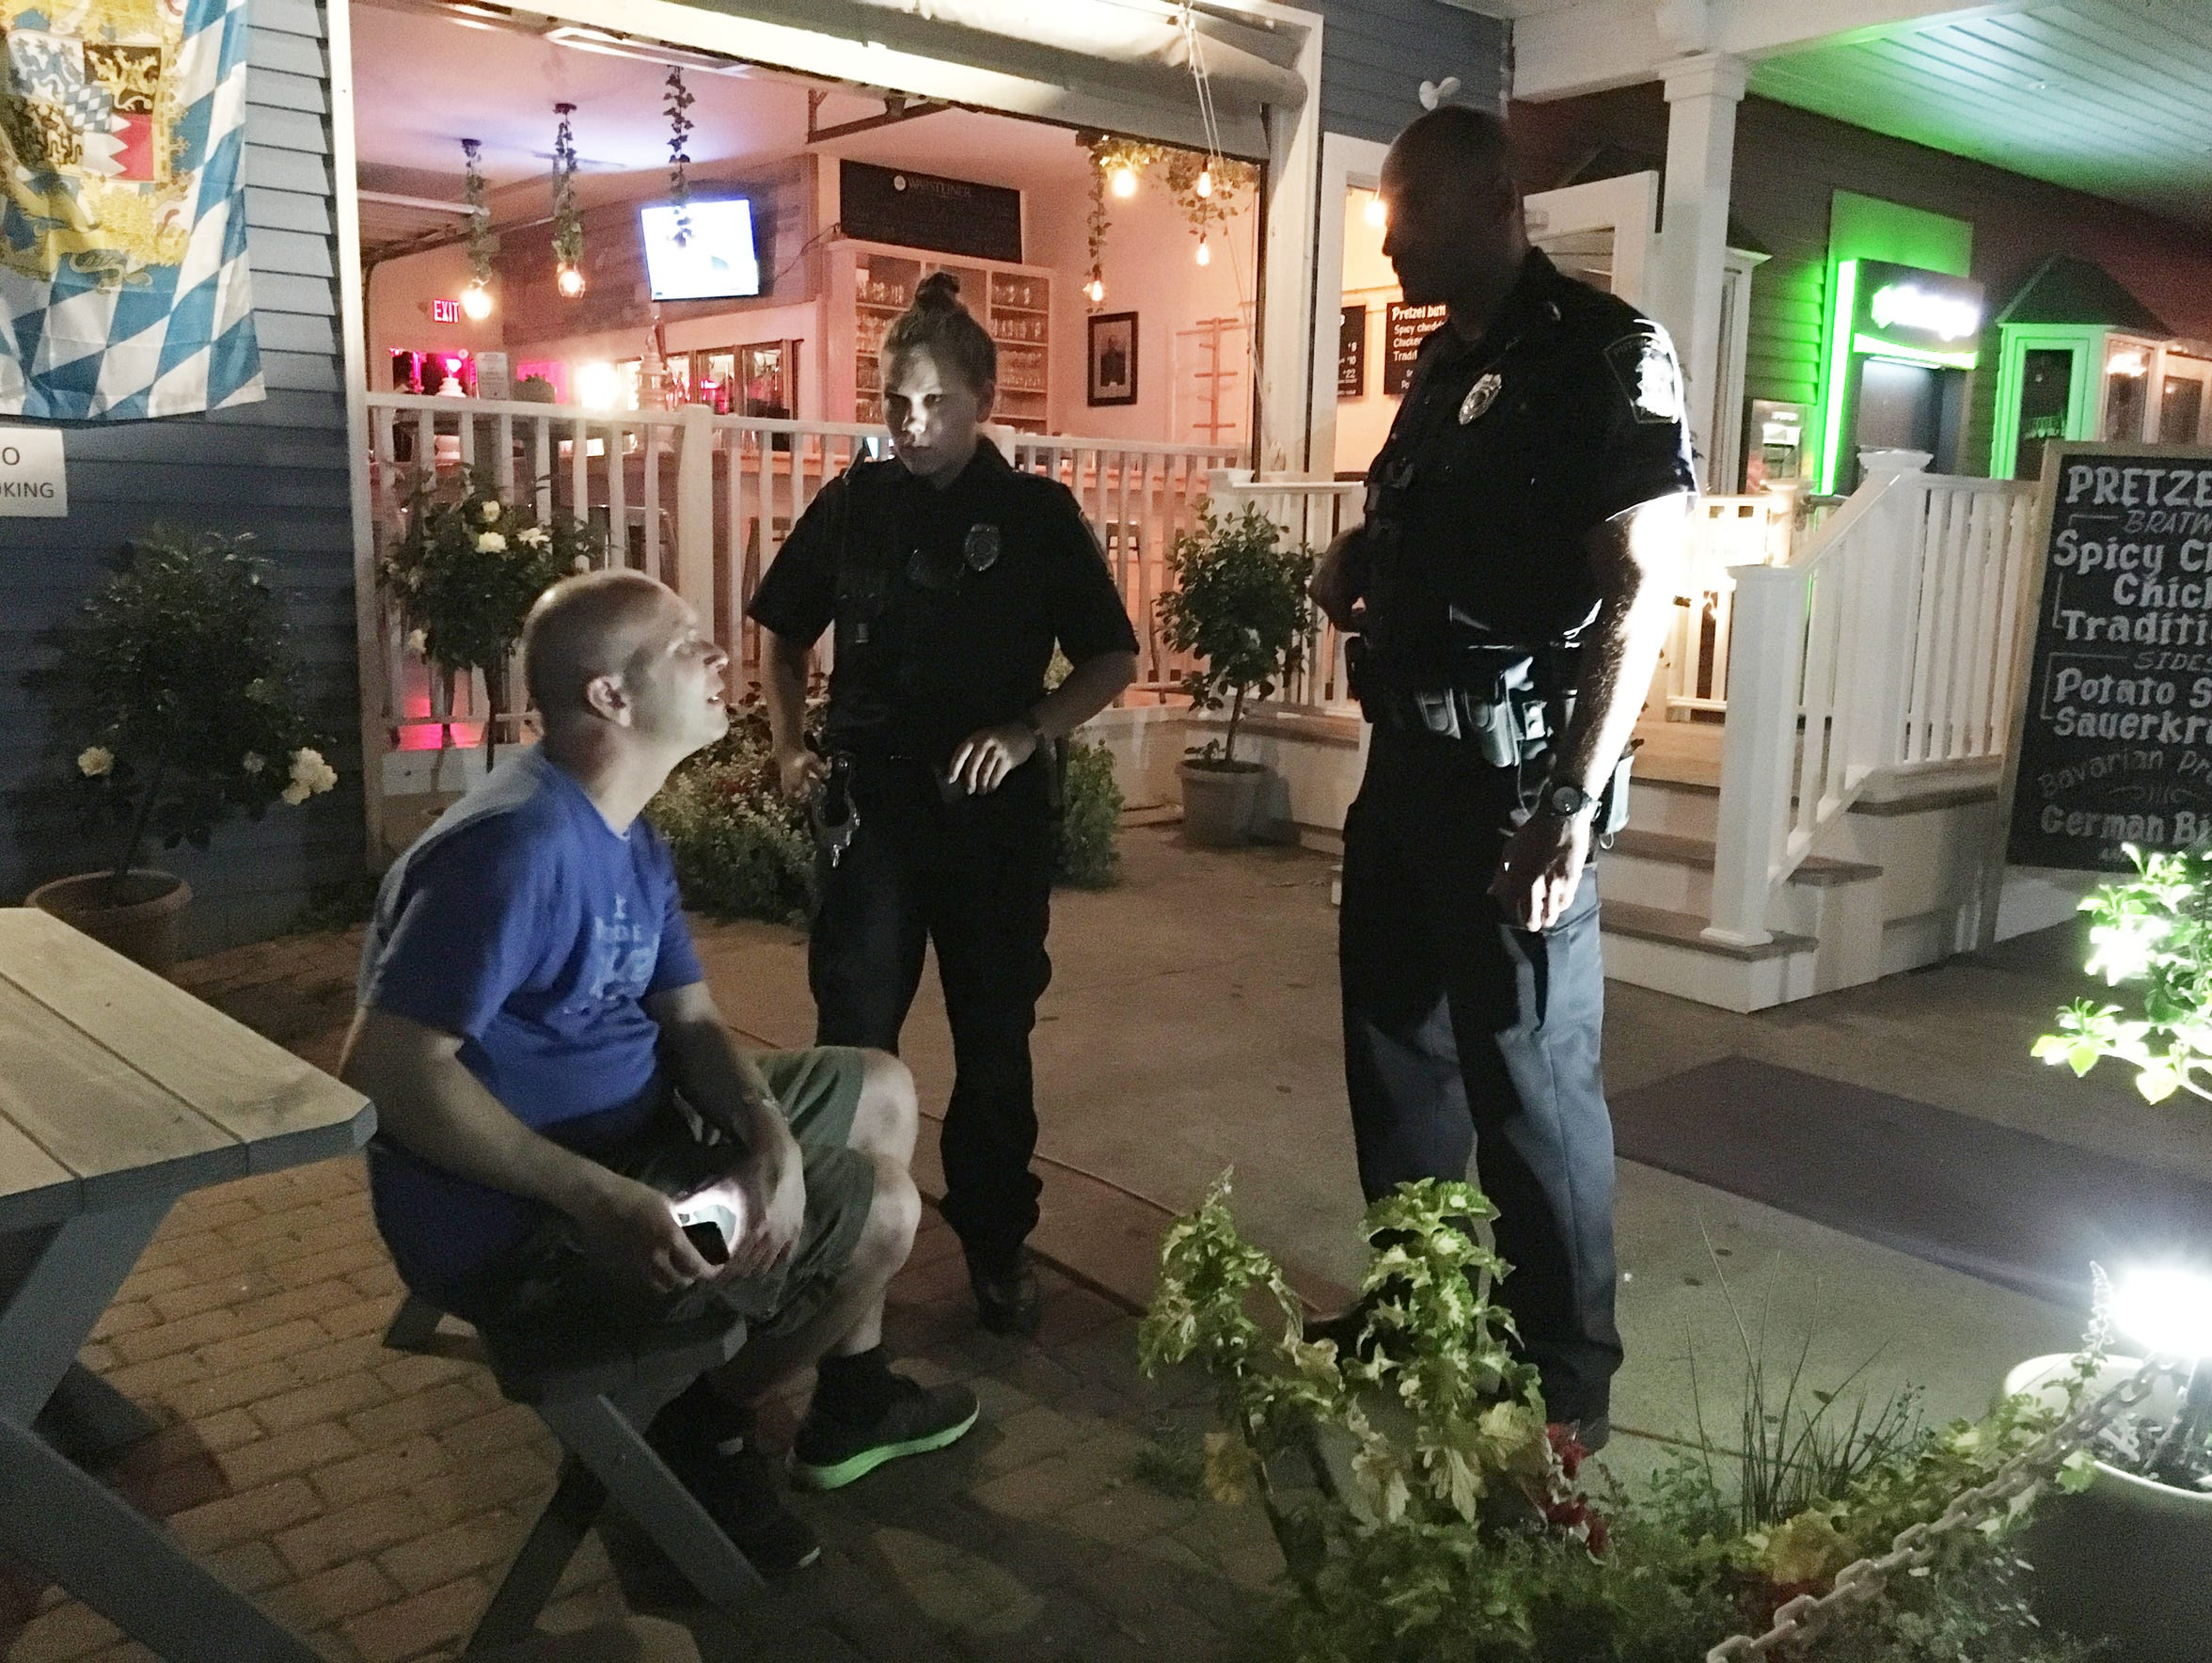 Put-in-Bay police officers question a tourist at the